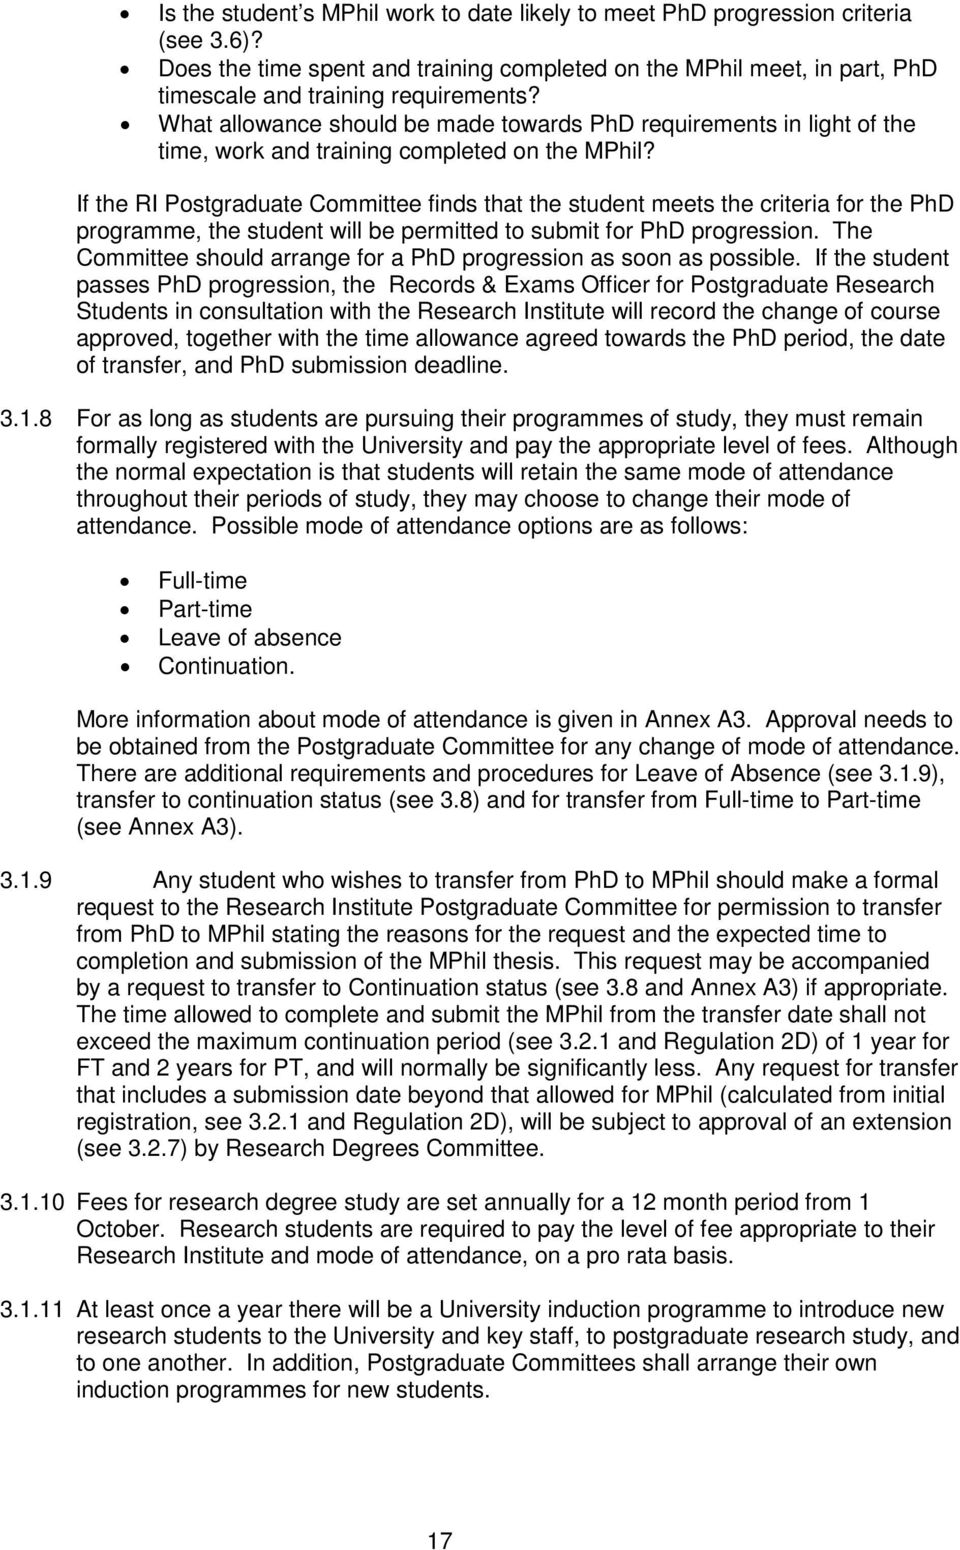 If the RI Postgraduate Committee finds that the student meets the criteria for the PhD programme, the student will be permitted to submit for PhD progression.